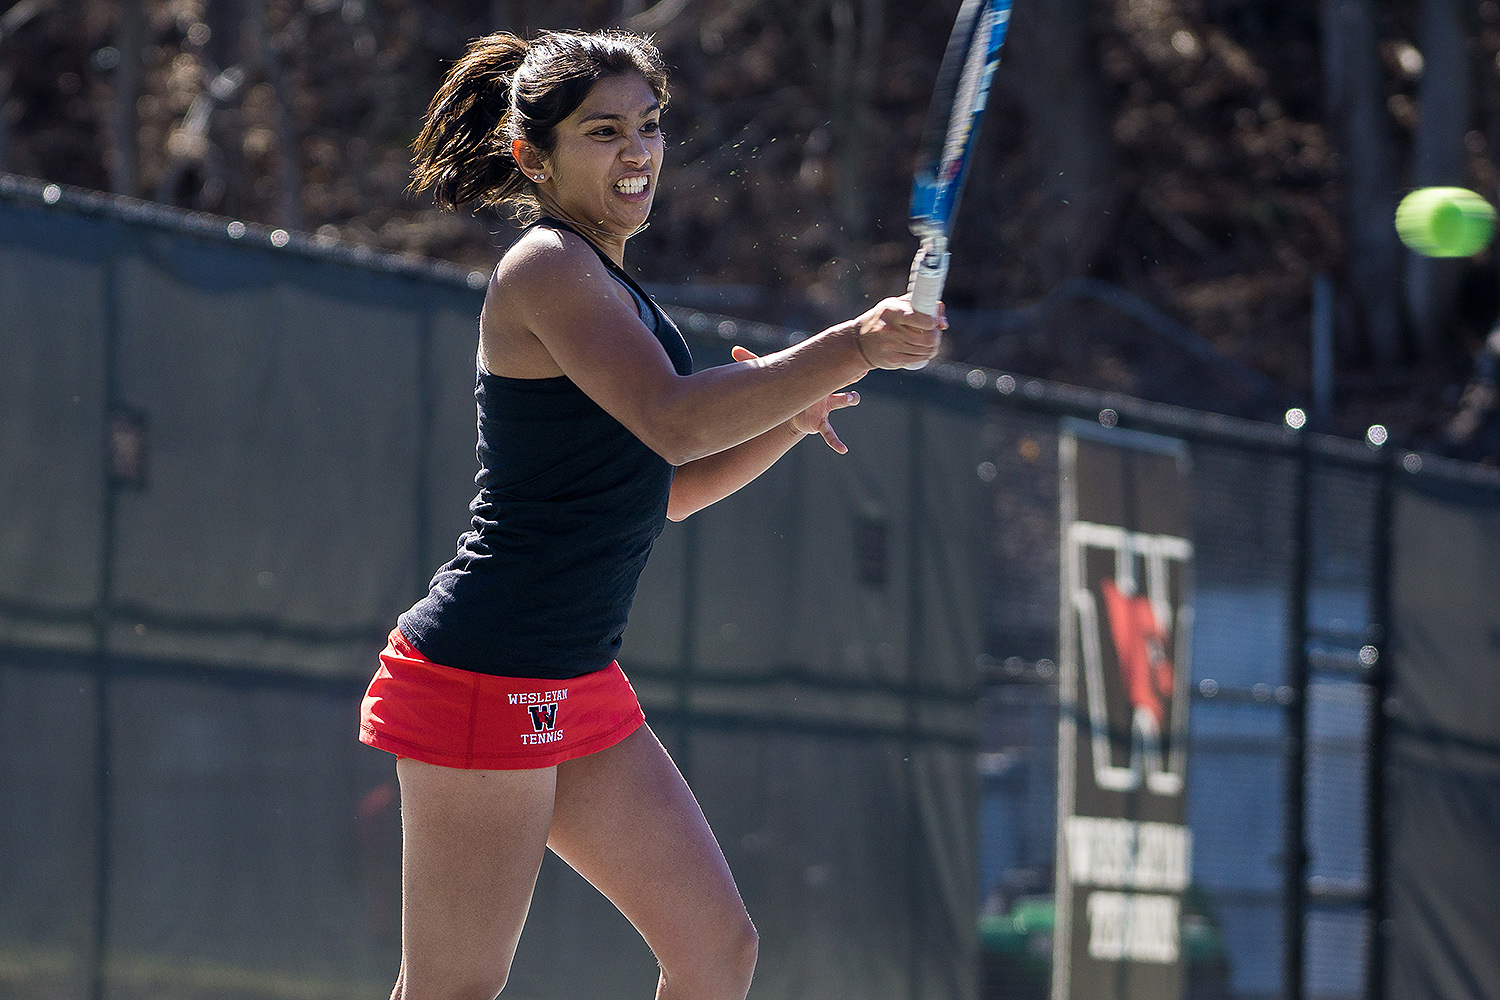 Aashli Budhiraja '18, pictured here playing an opponent from Williams, was one of six women tennis players to be named a Division III Scholar Athlete by the Intercollegiate Tennis Association.